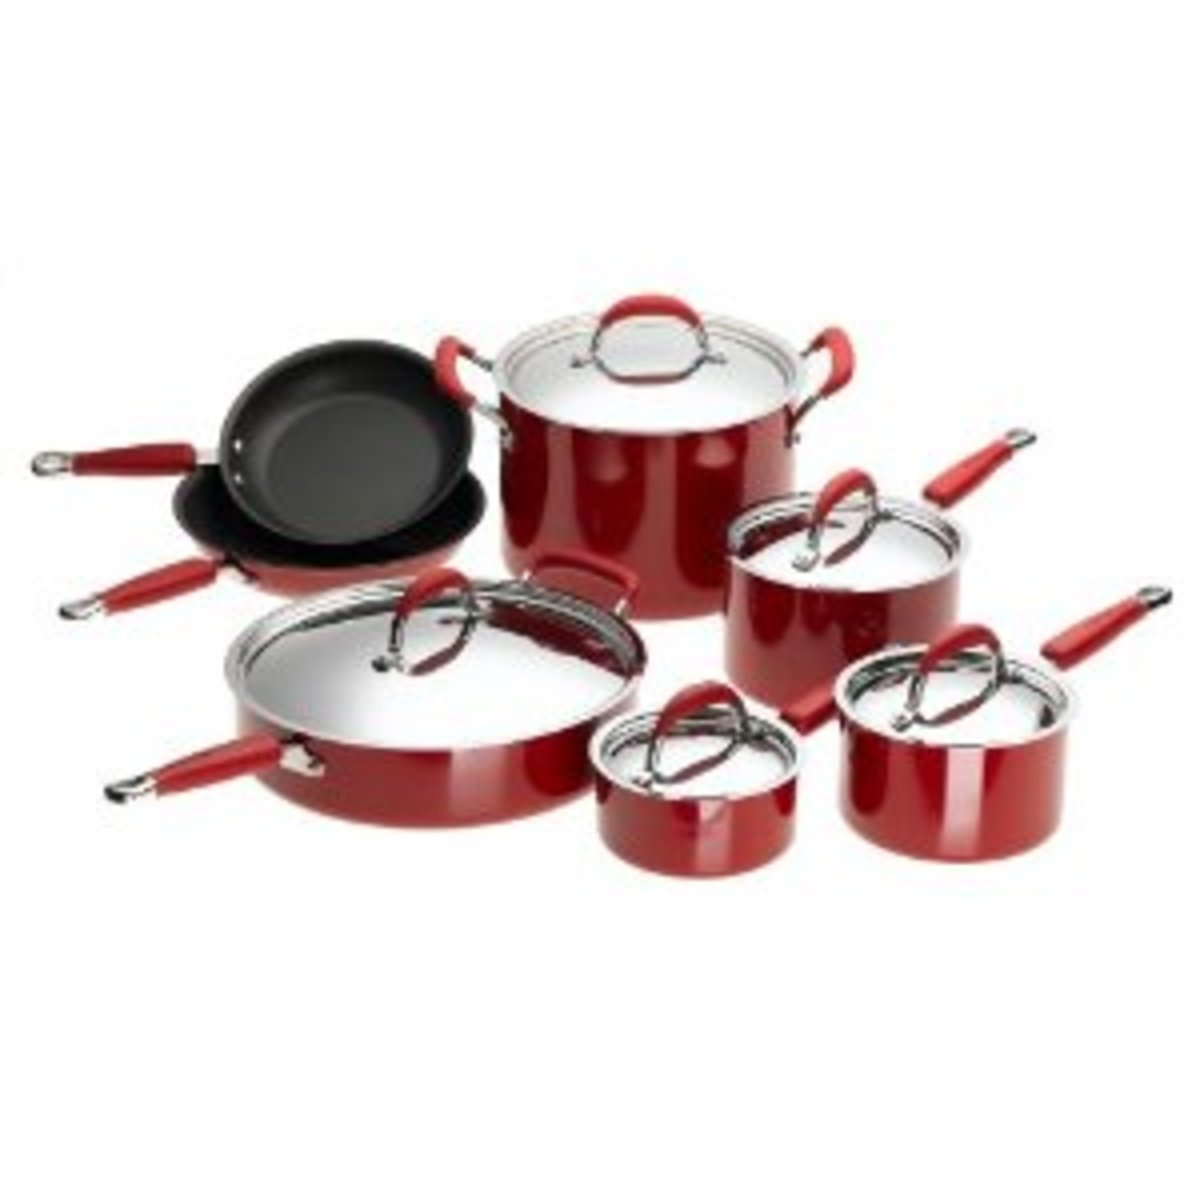 Must Have Cooking Utensils for Single Households